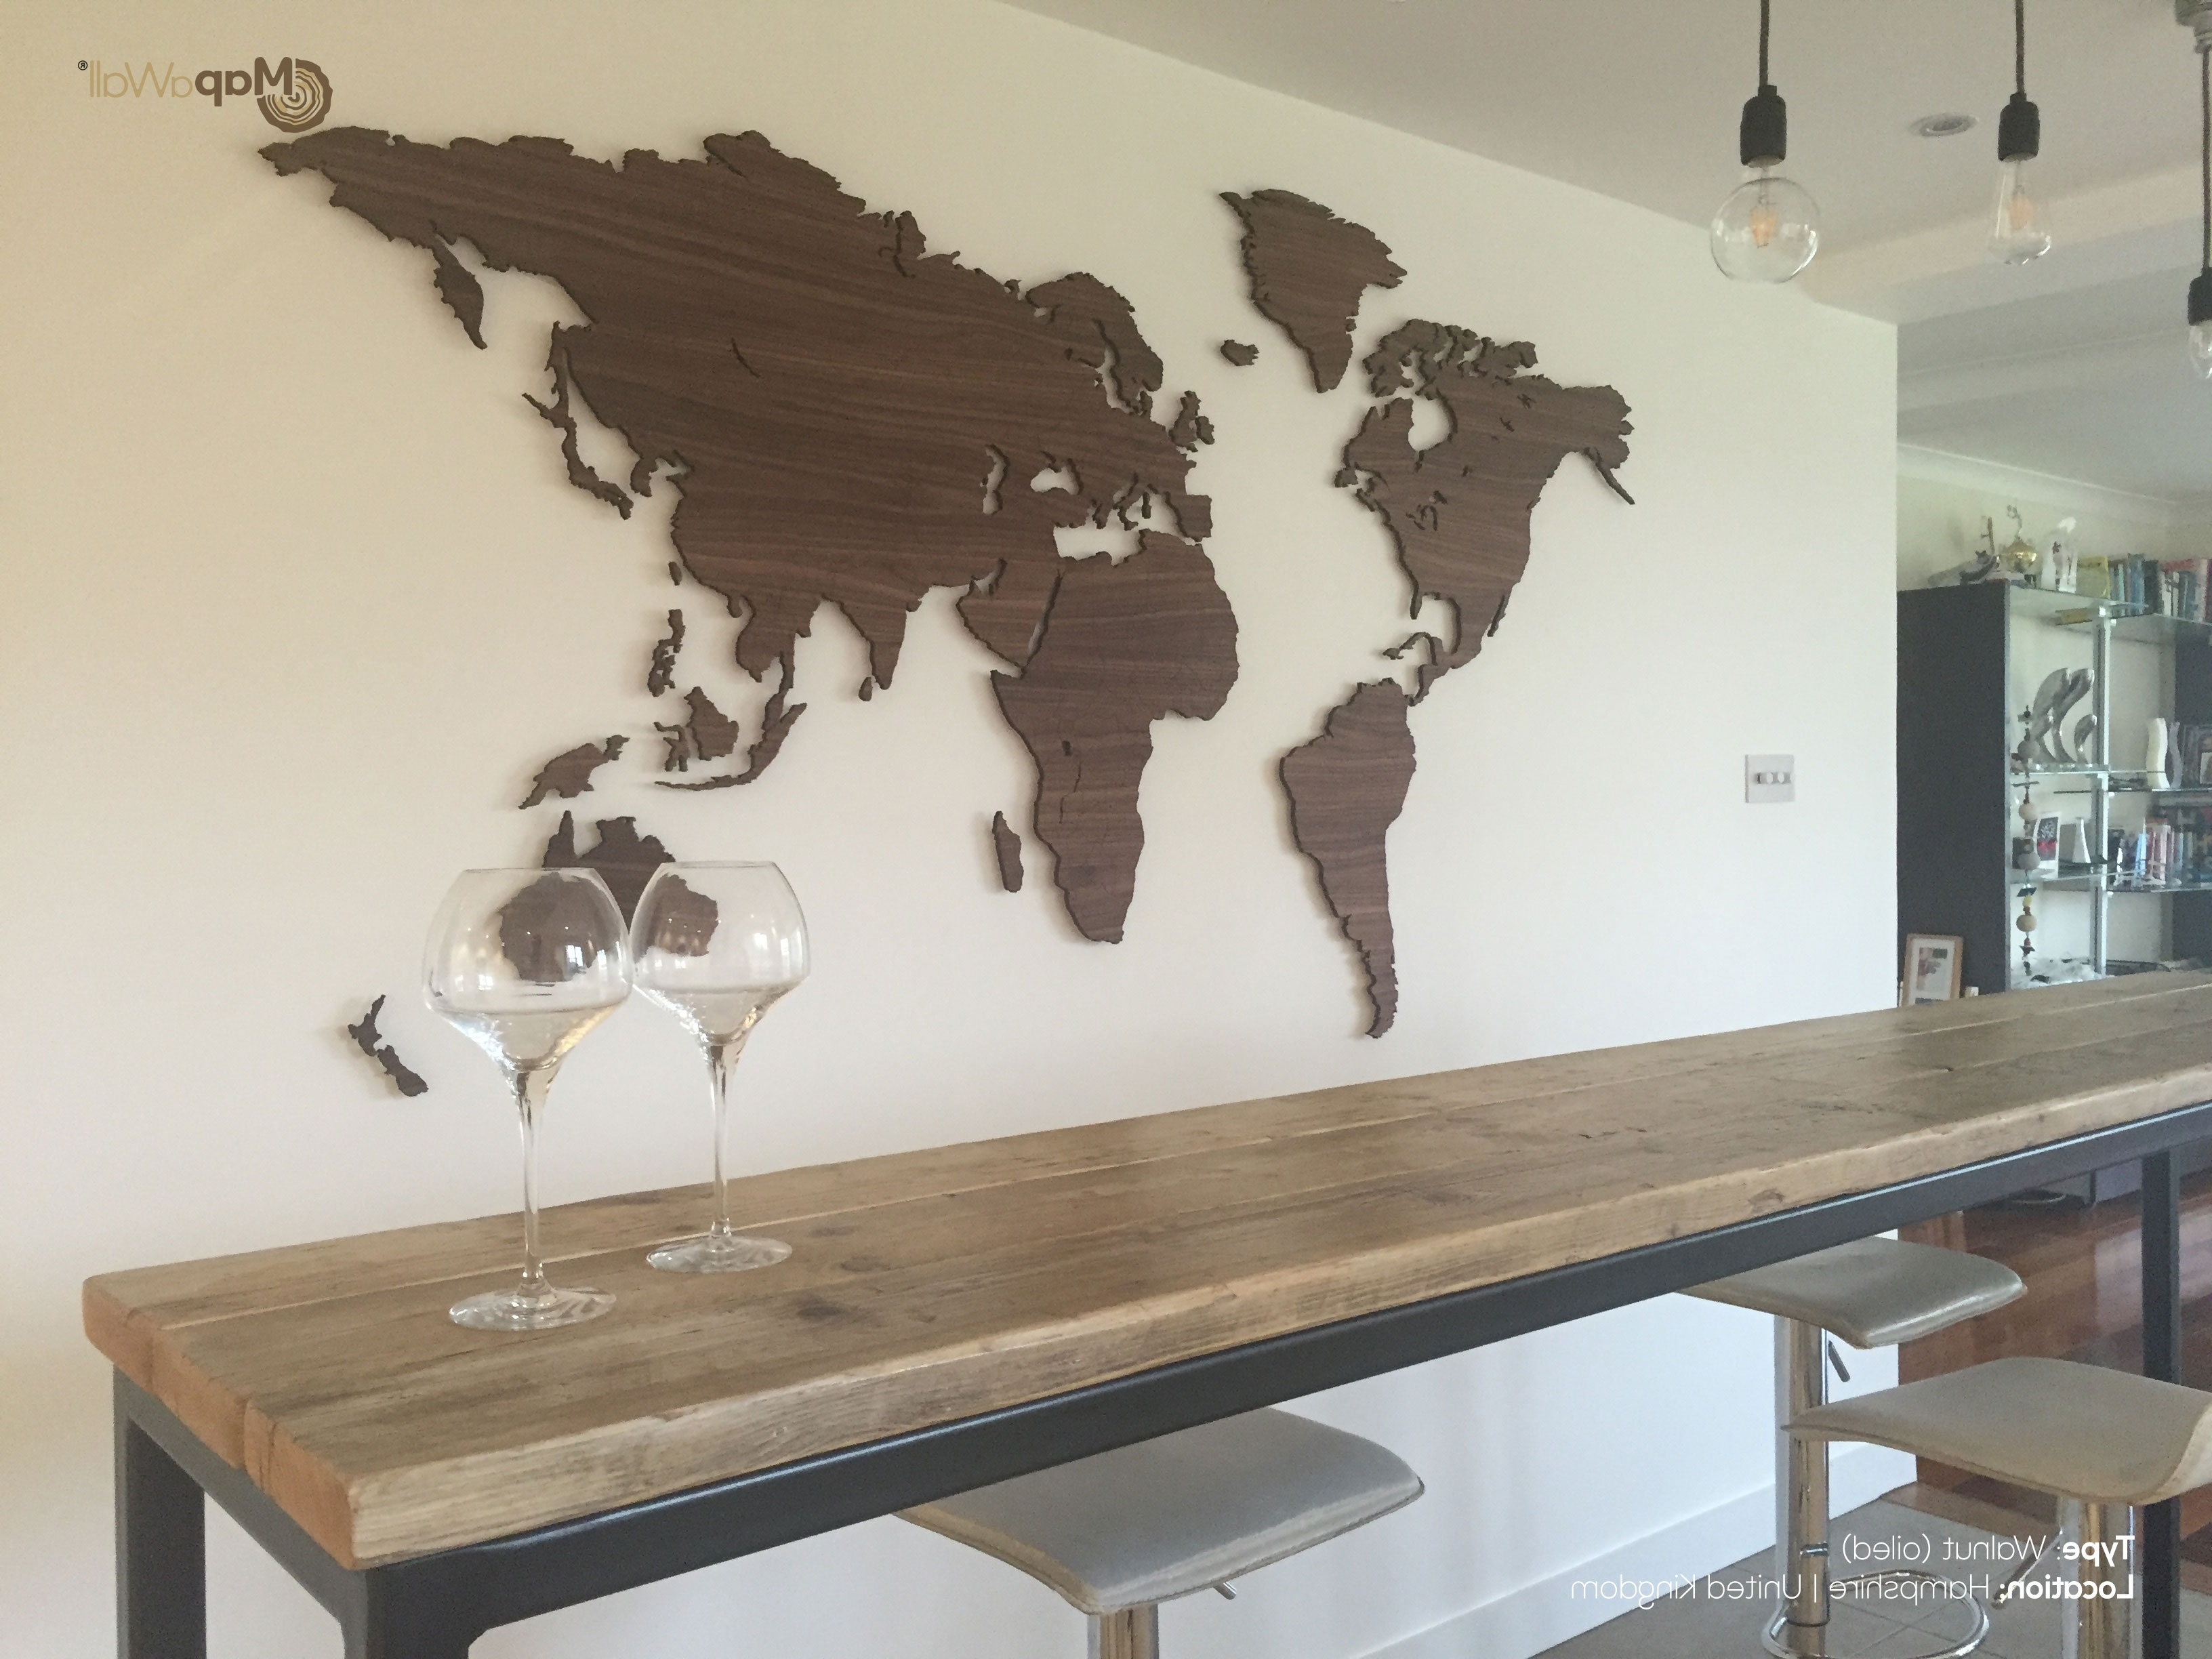 Marvellous Inspiration Ideas Wooden World Map Wall Art Home Decor With Regard To Favorite Wood Map Wall Art (View 5 of 15)